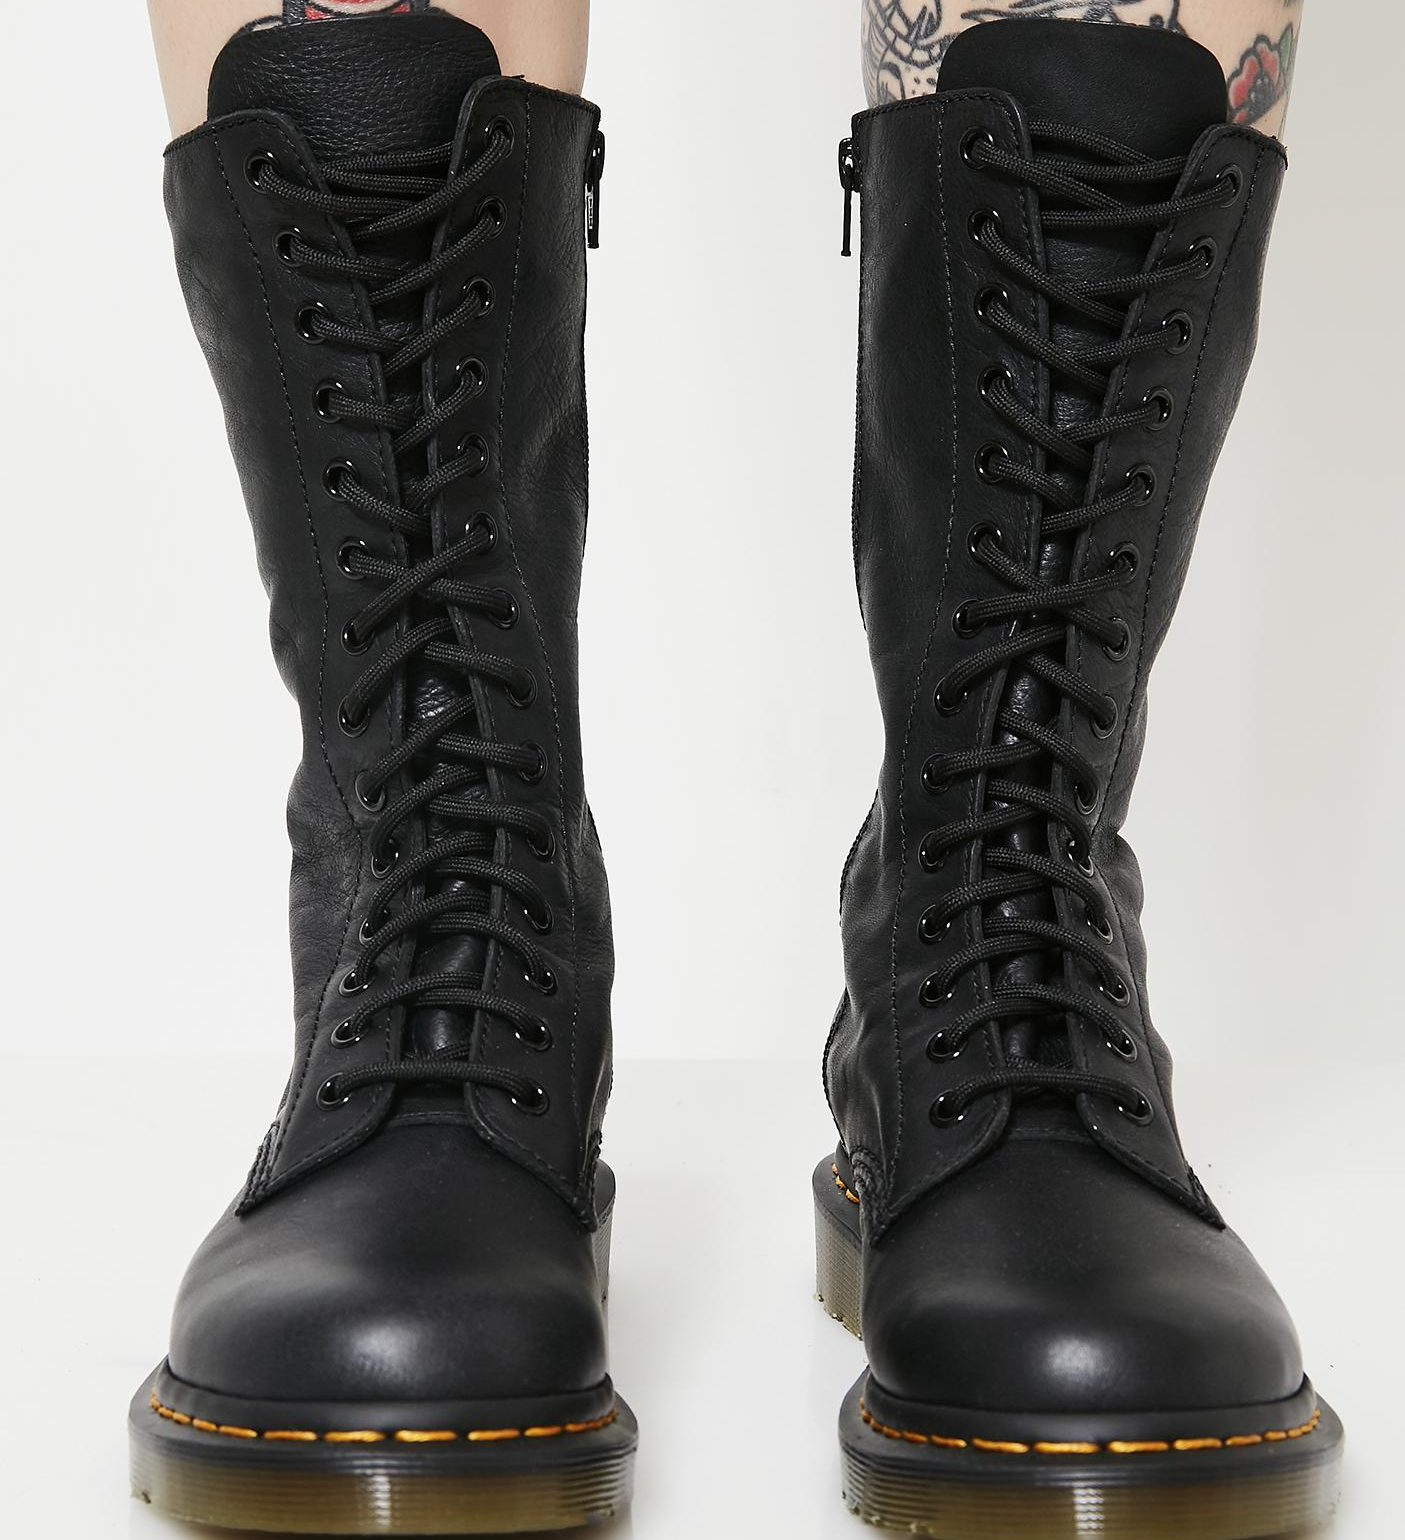 Dr. Martens 14 Eye Boots - Women of Edm 5ccb75c01